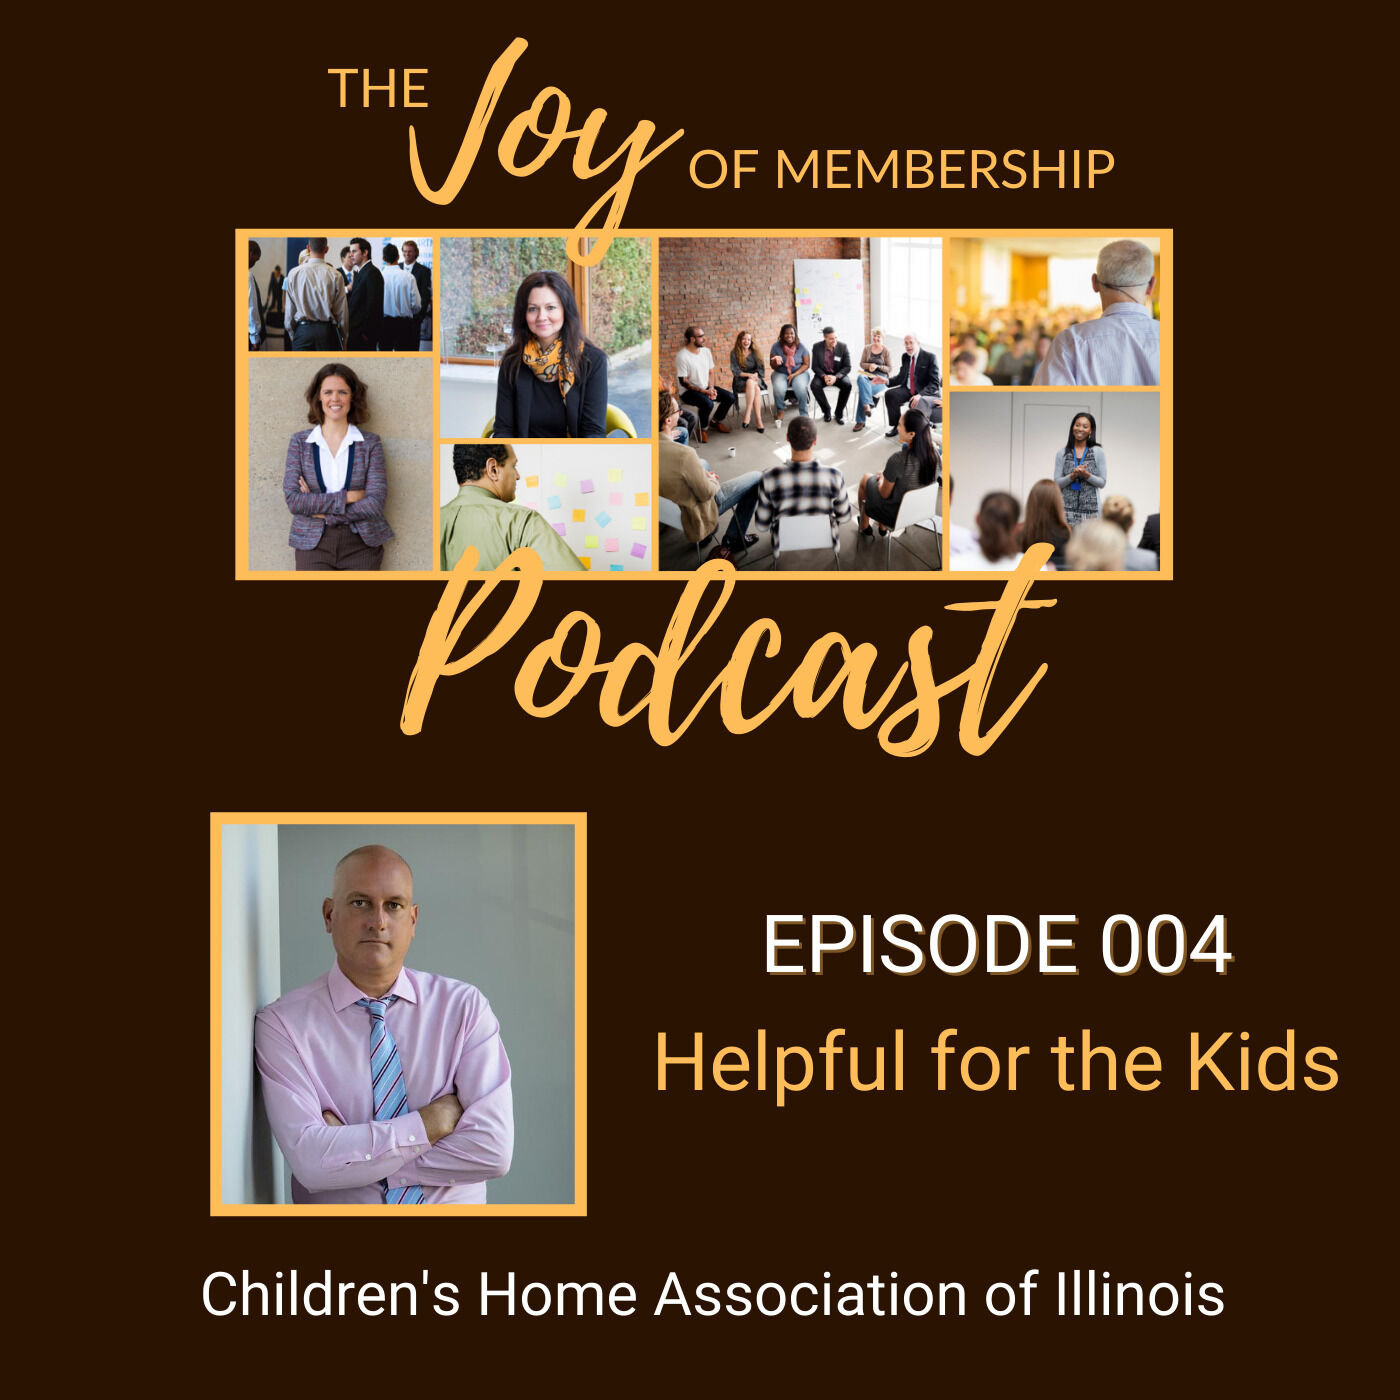 Helpful for the Kids: Children's Home Association of Illinois